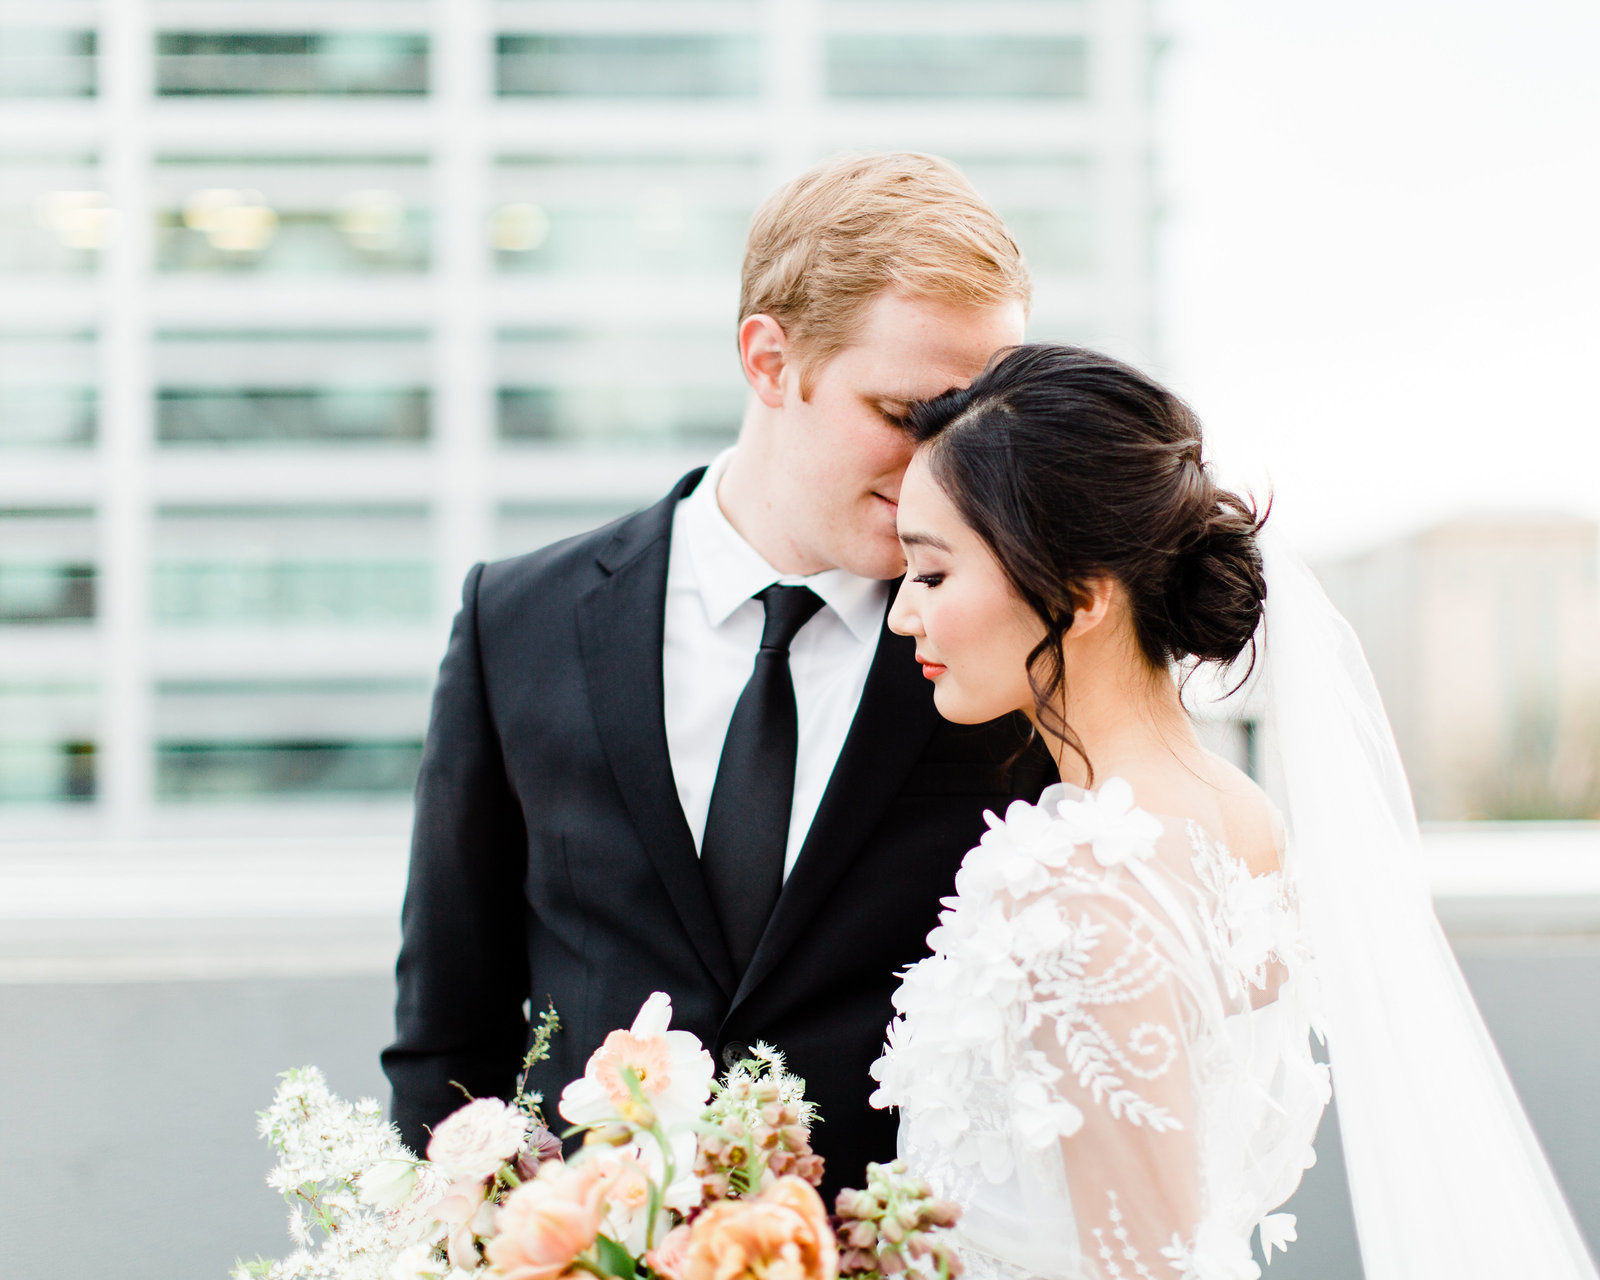 KaileeMatsumuraPhotography-UtahWedding Photographer-156